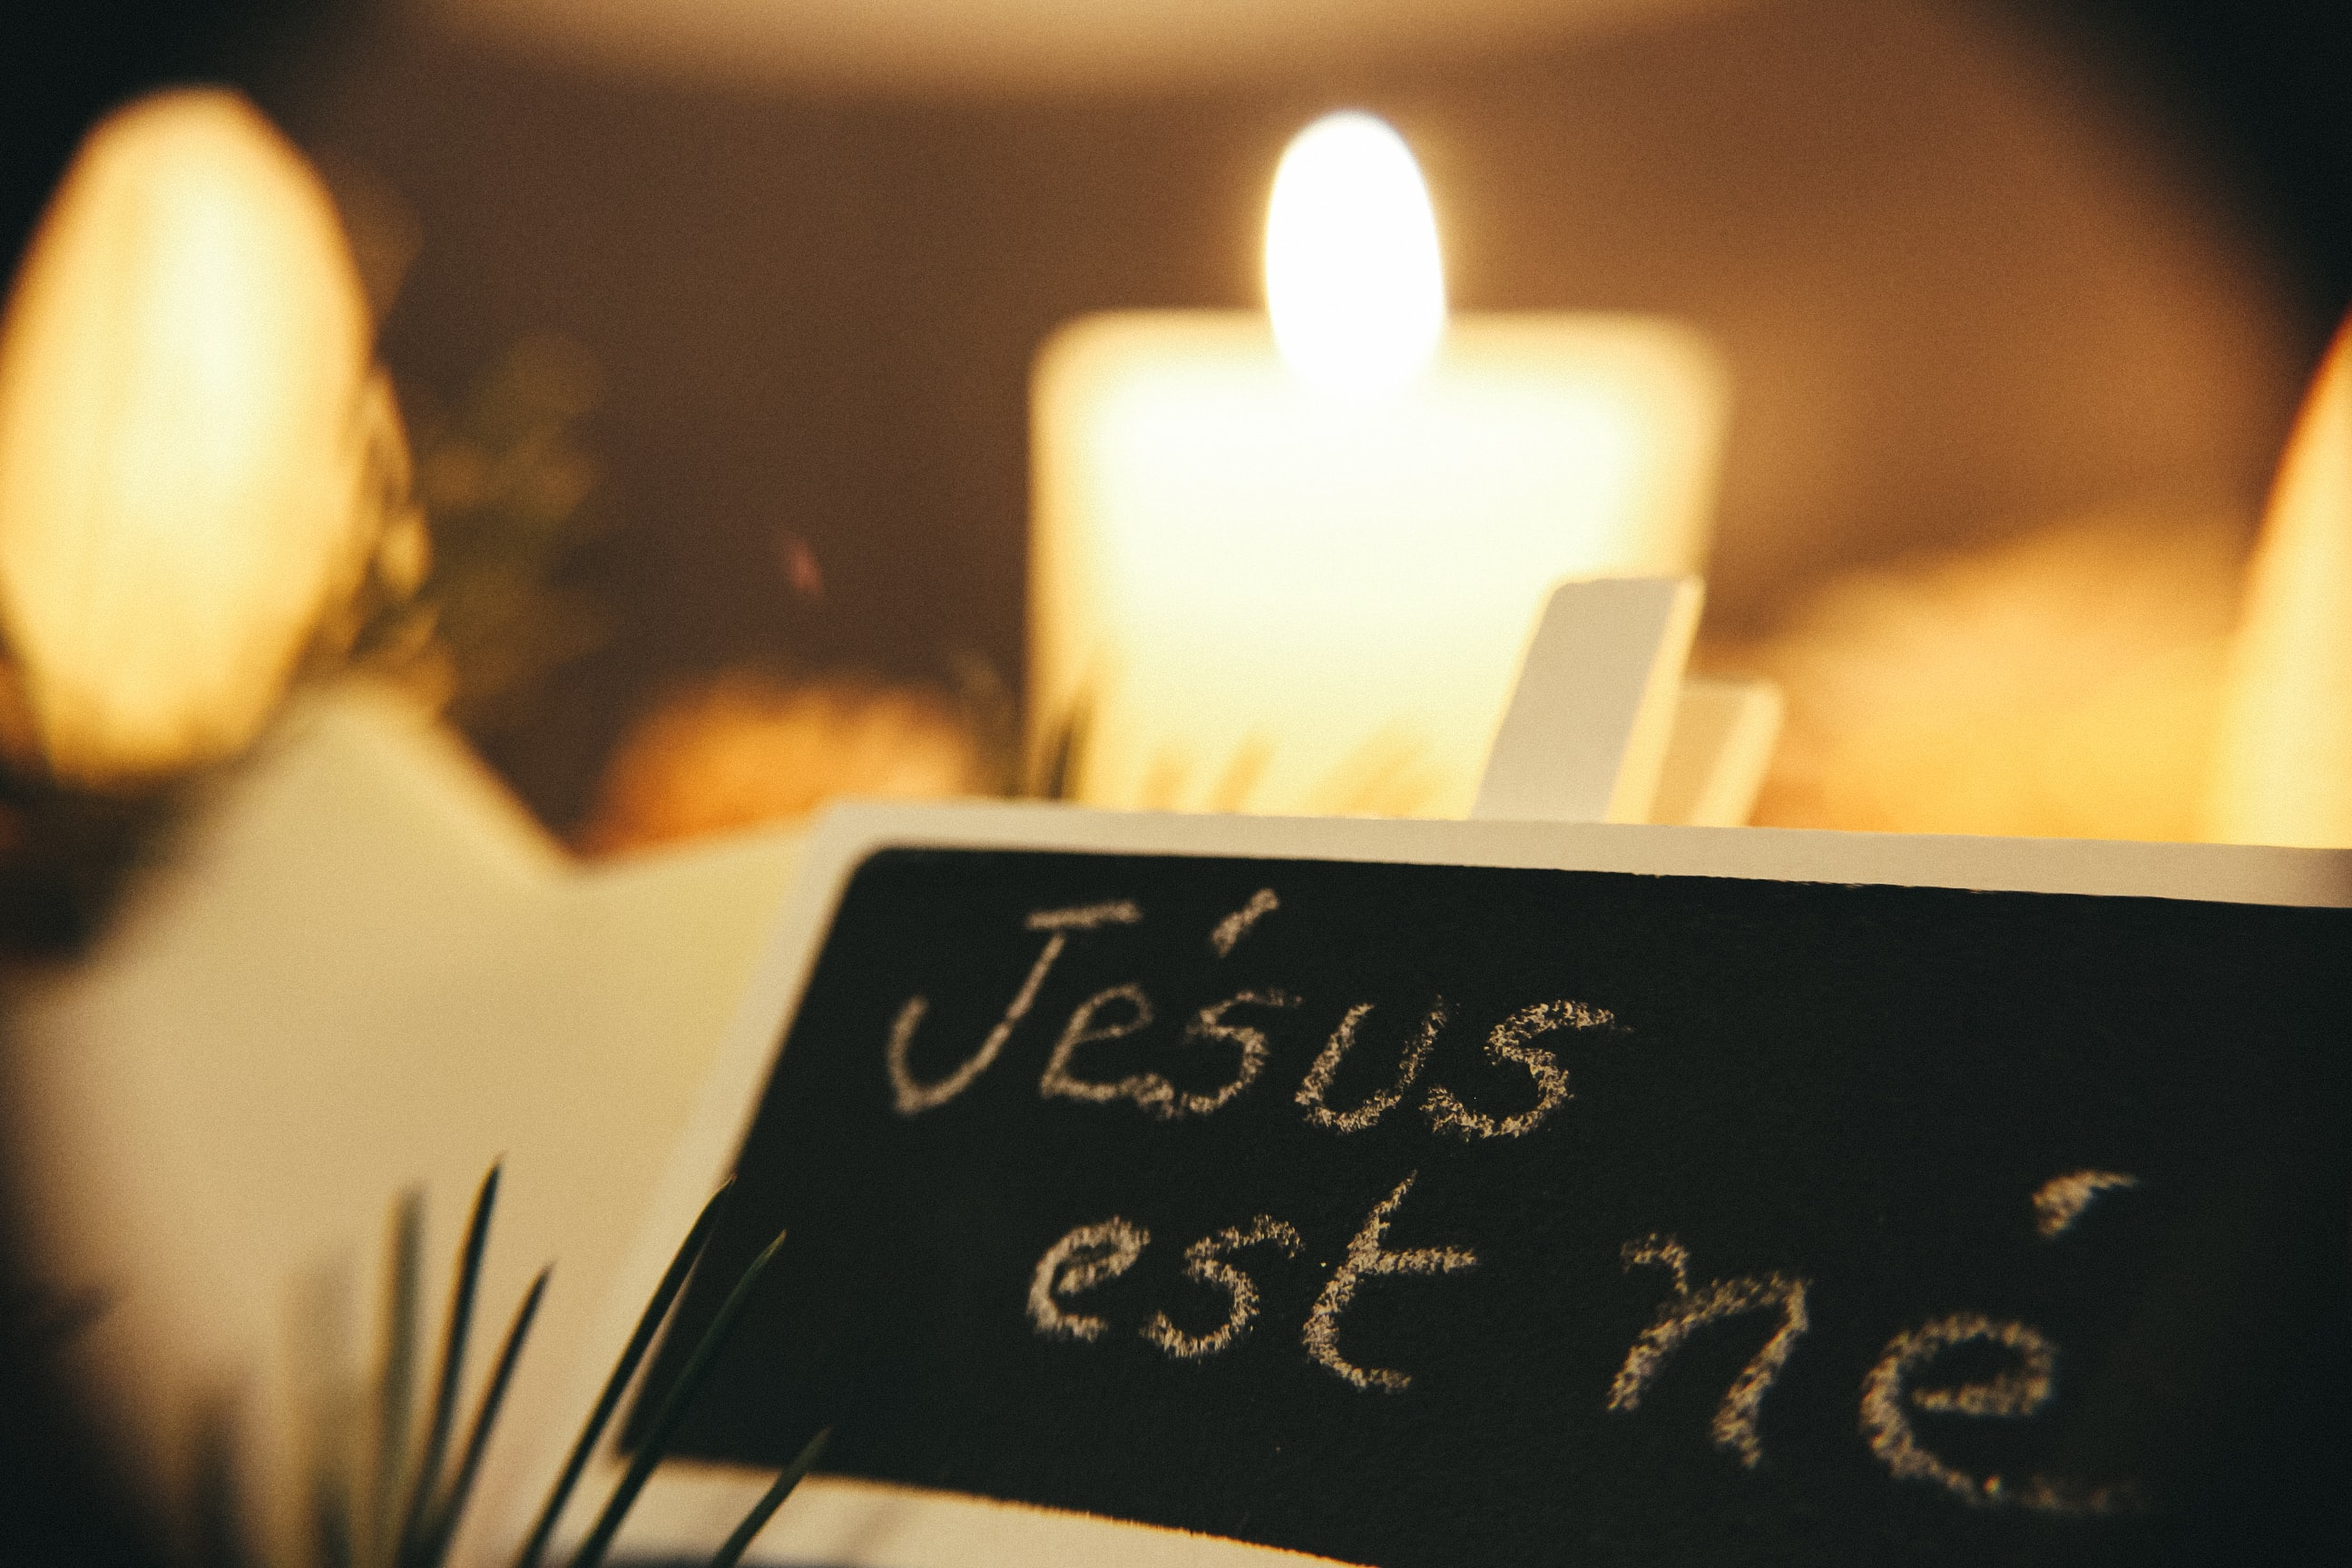 """White chalk writing on a black chalkboard that reads """"Jesus est ne,"""" in front of a lit candle."""